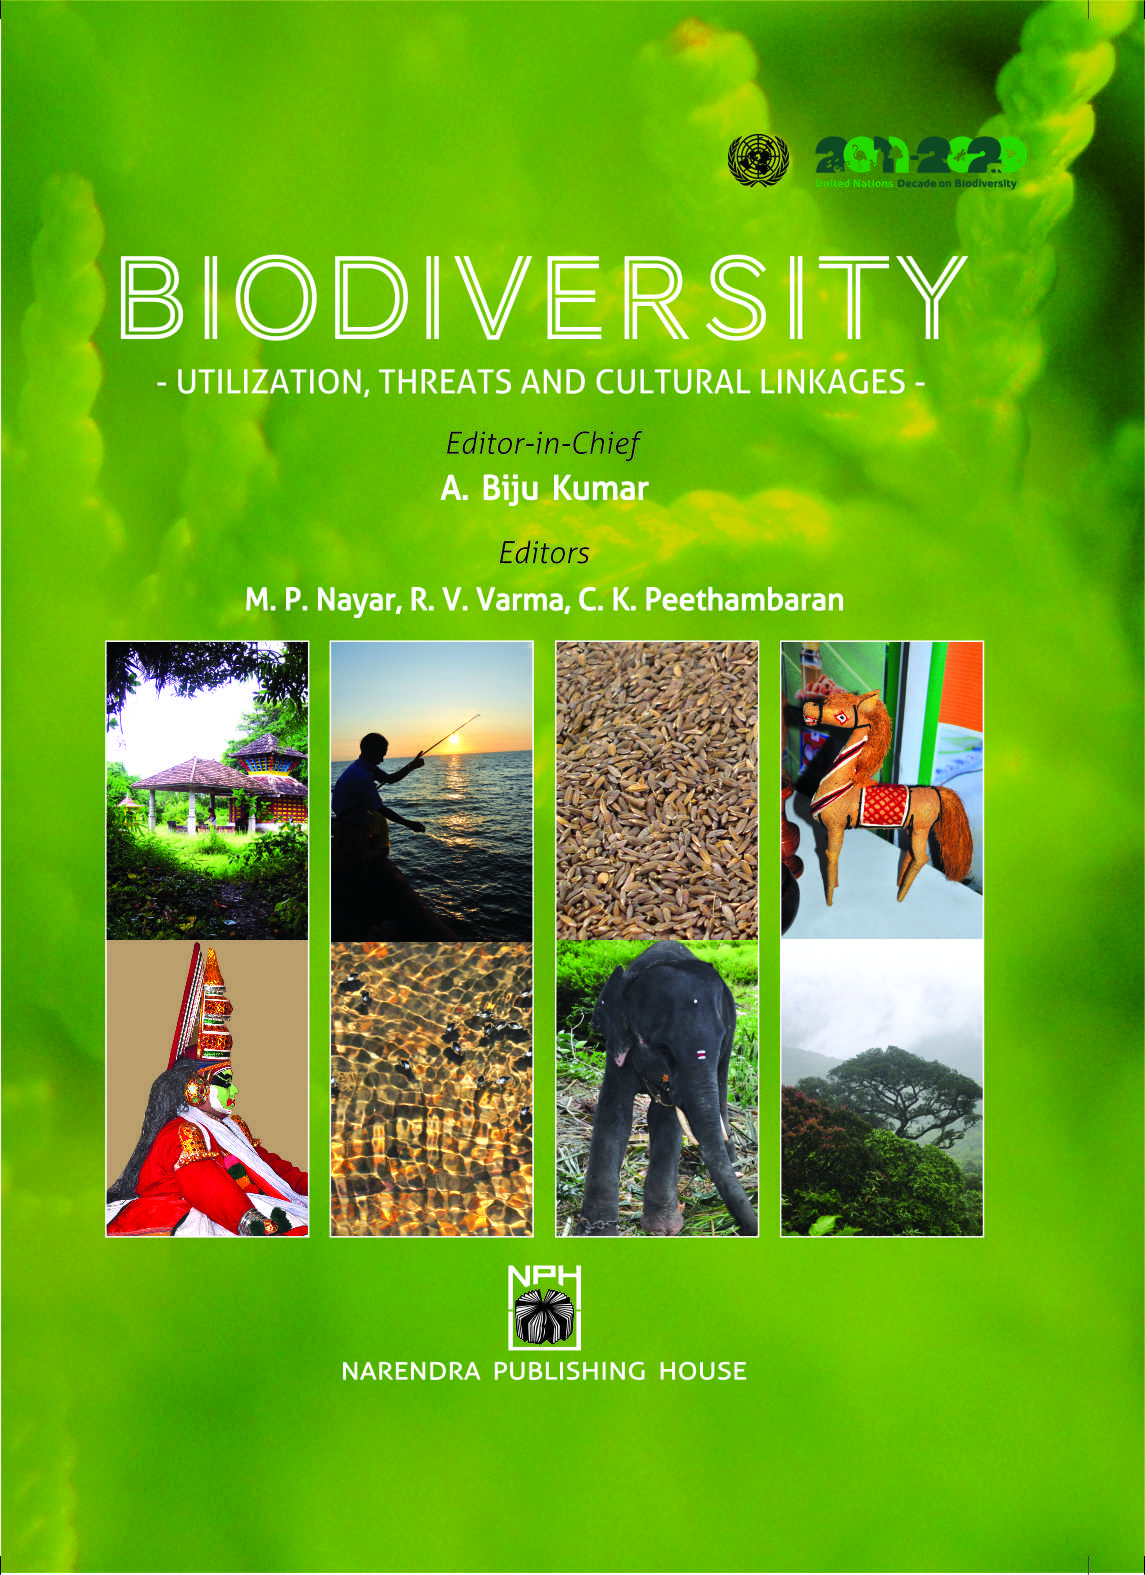 Biodiversity : Utilization, Threats and Cultural Linkages